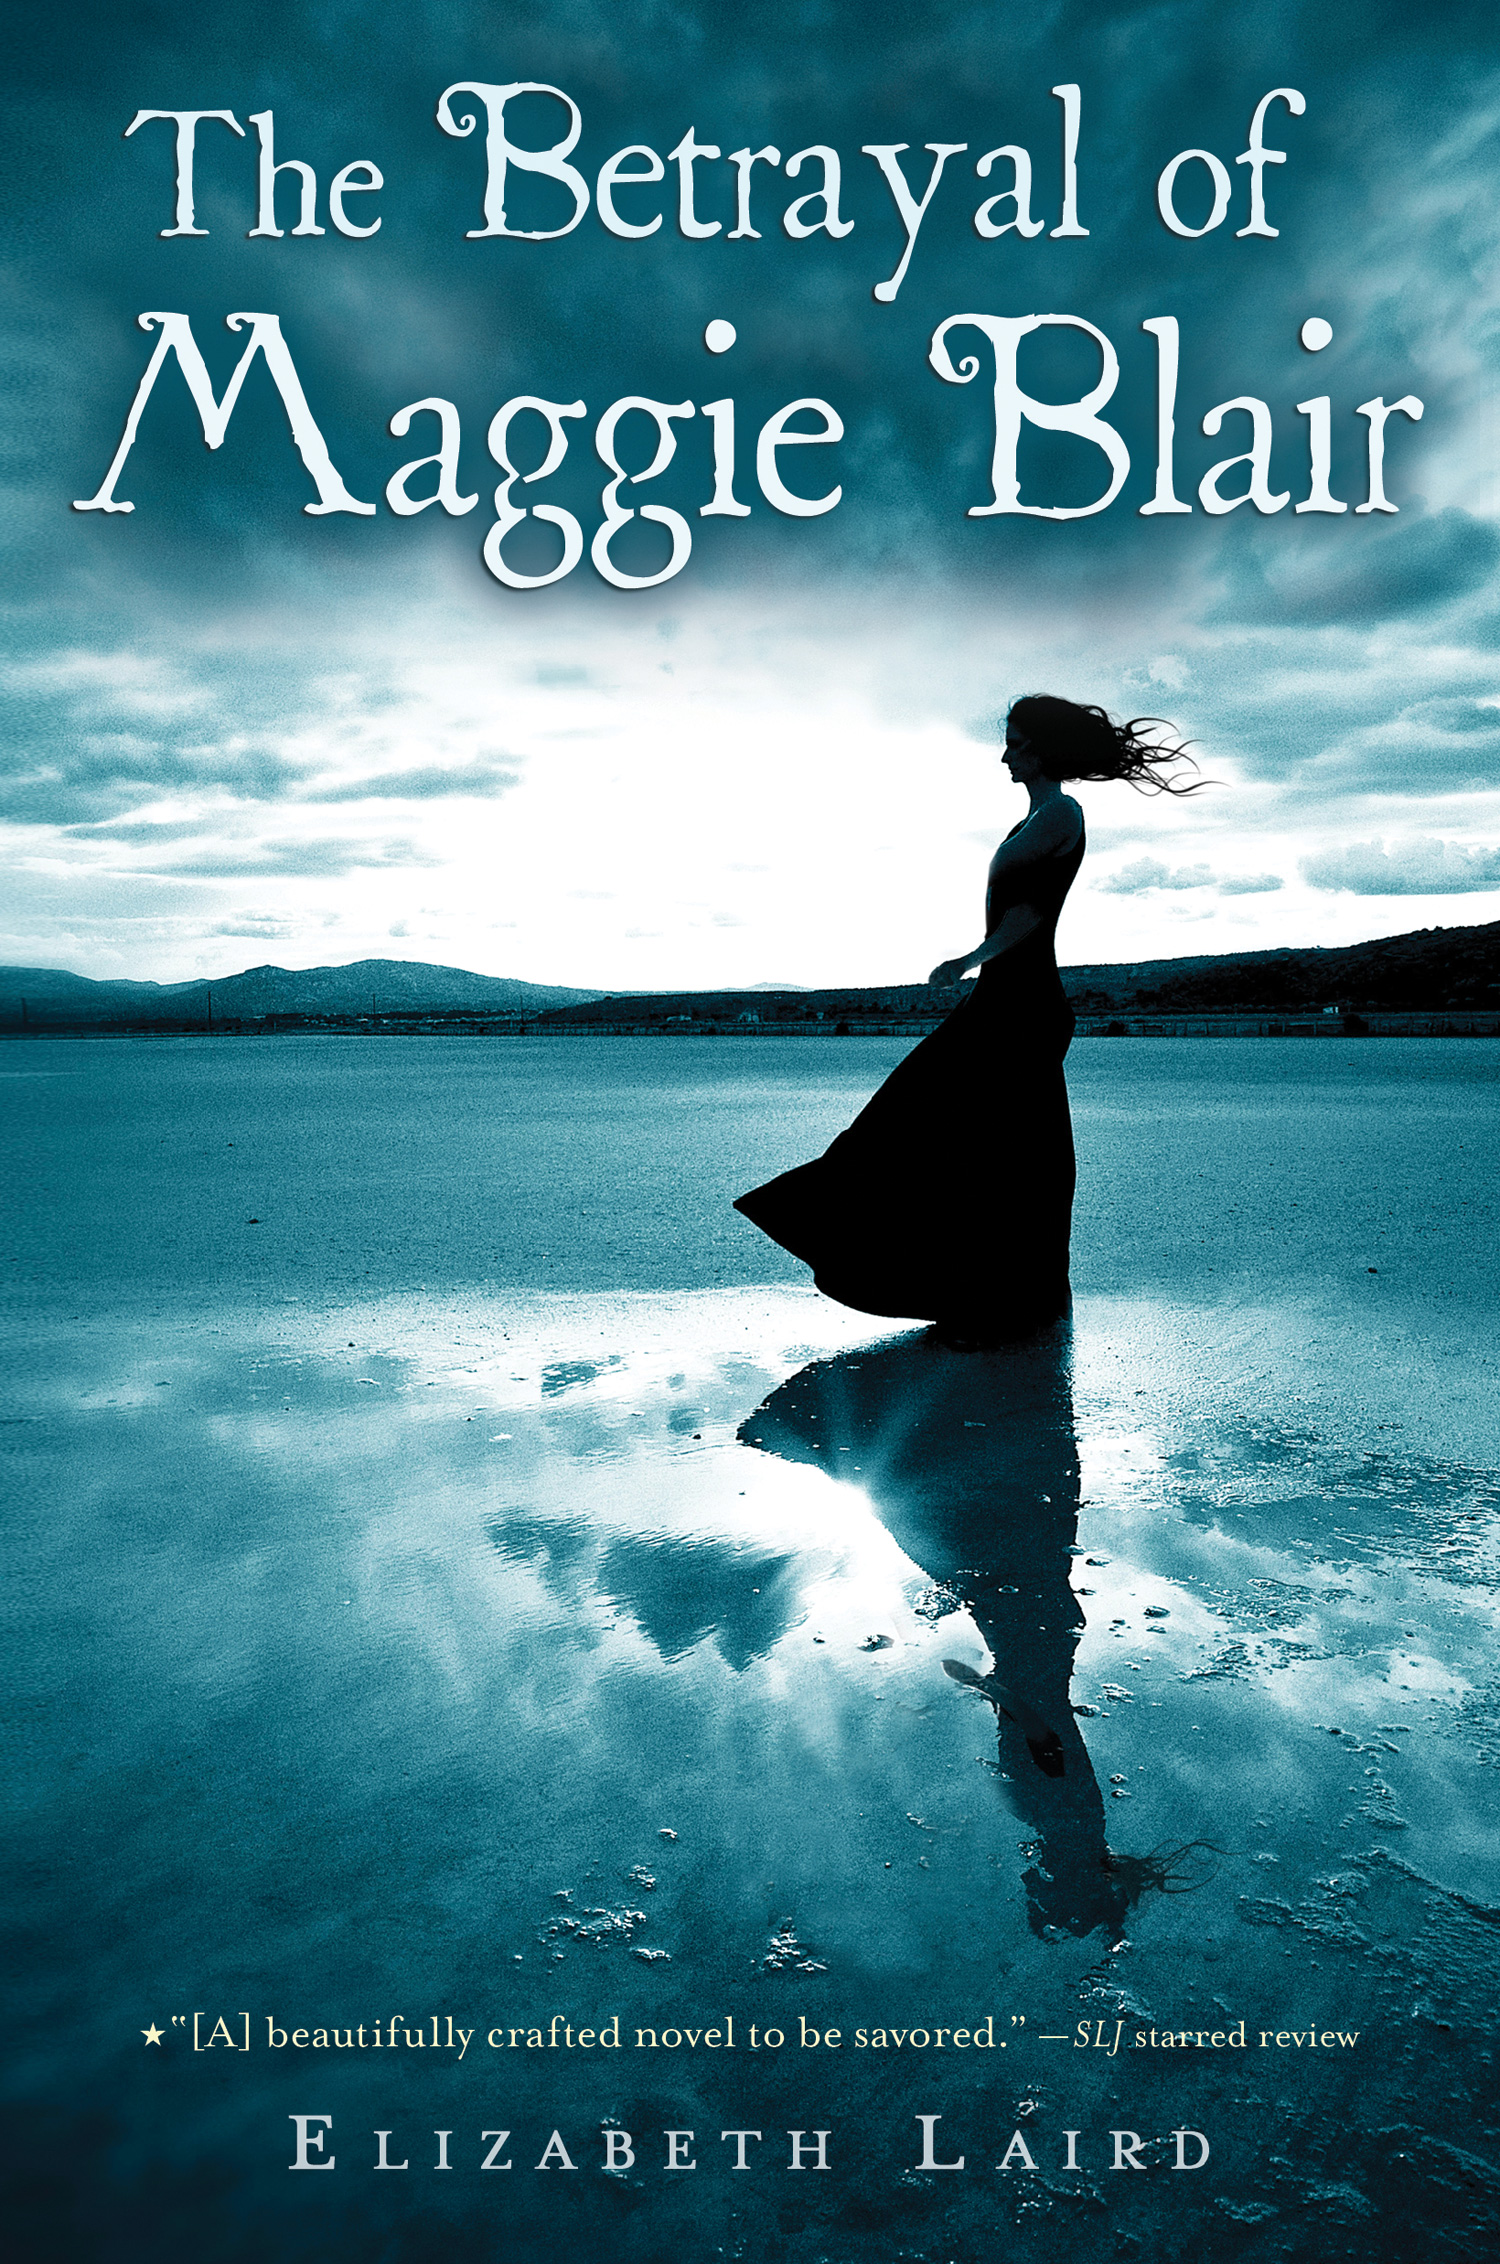 The Betrayal of Maggie Blair-9780547722061